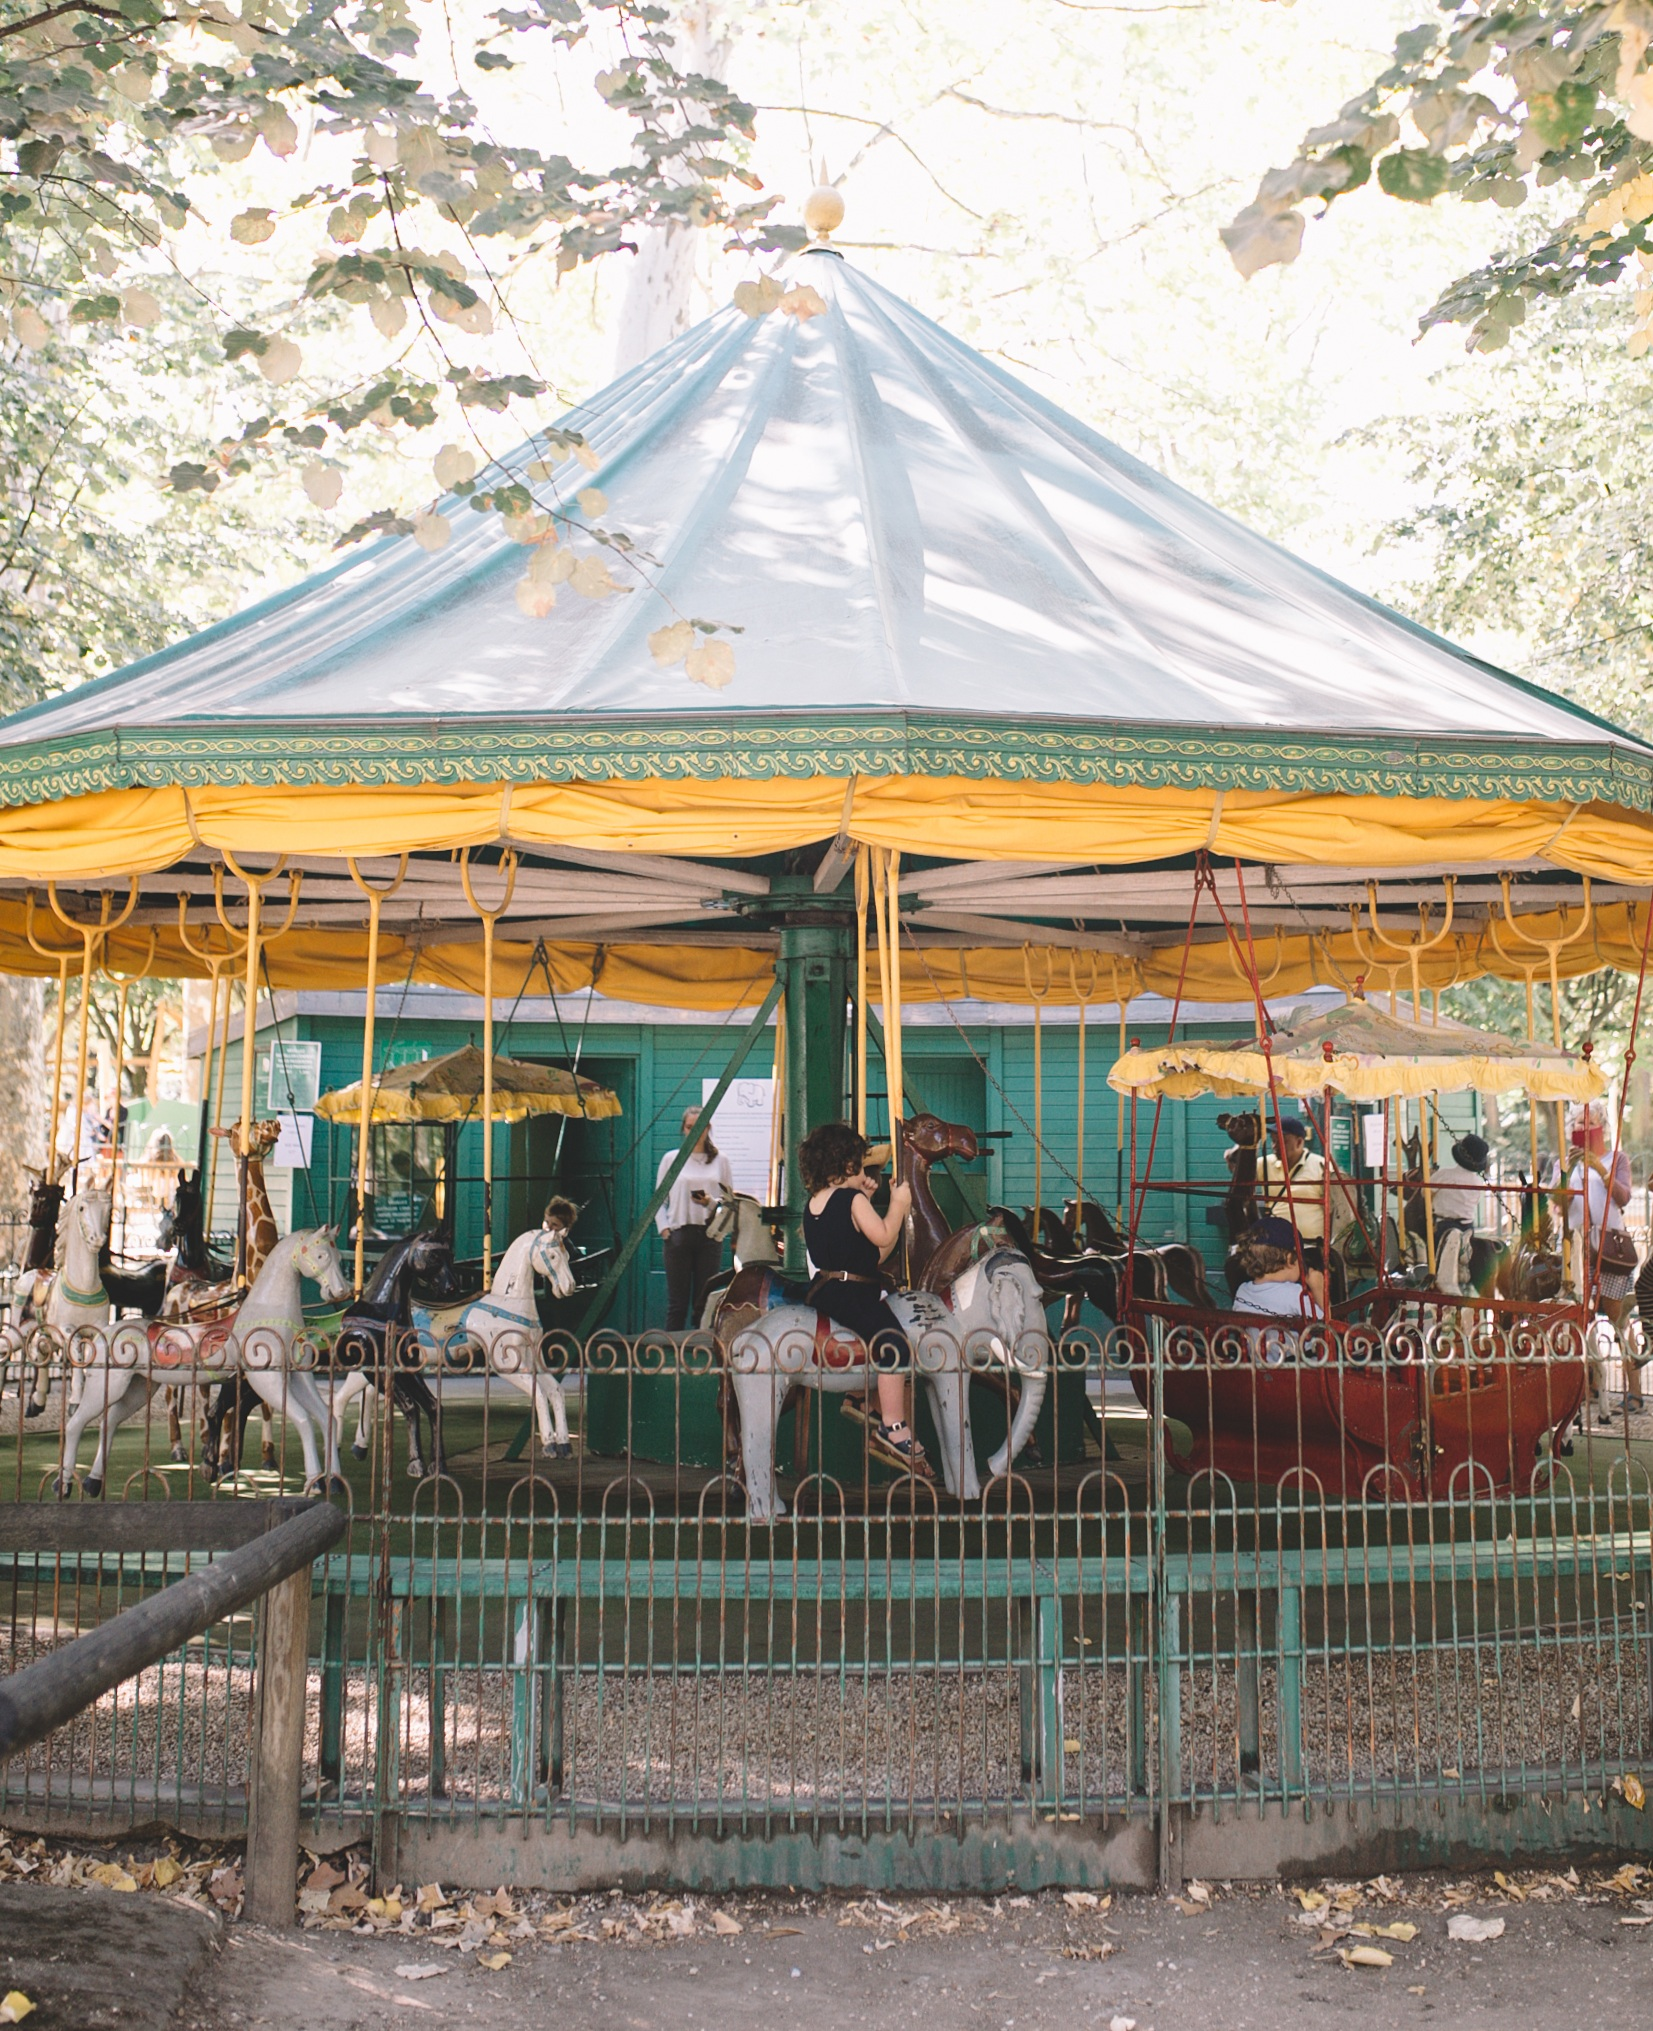 Jardin Du Luxenbourg Sailboats, Carousel, and Lawn (23 of 76).jpg